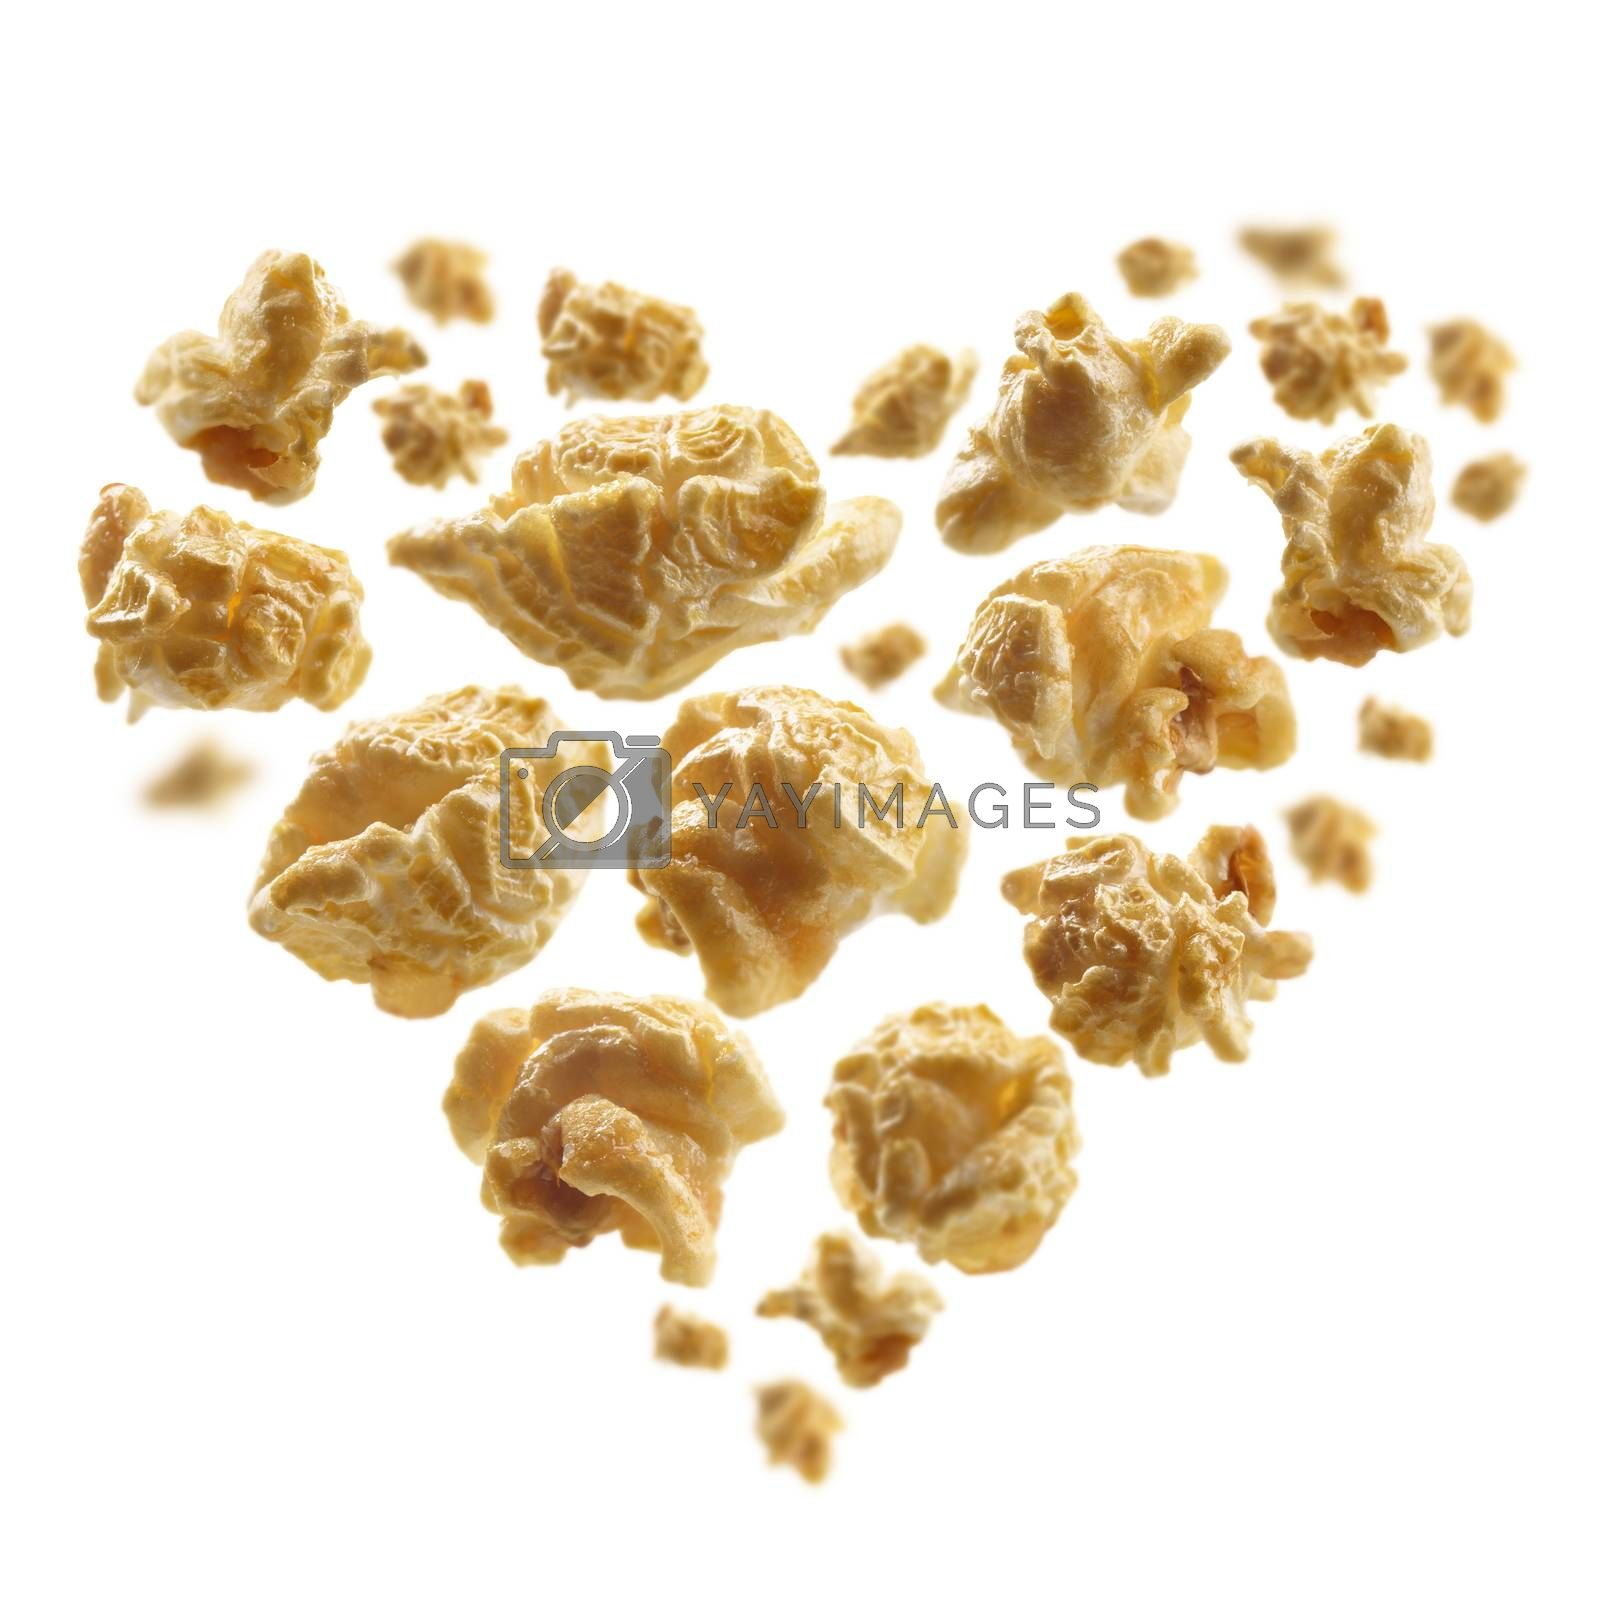 Popcorn with a taste of caramel in the shape of a heart.